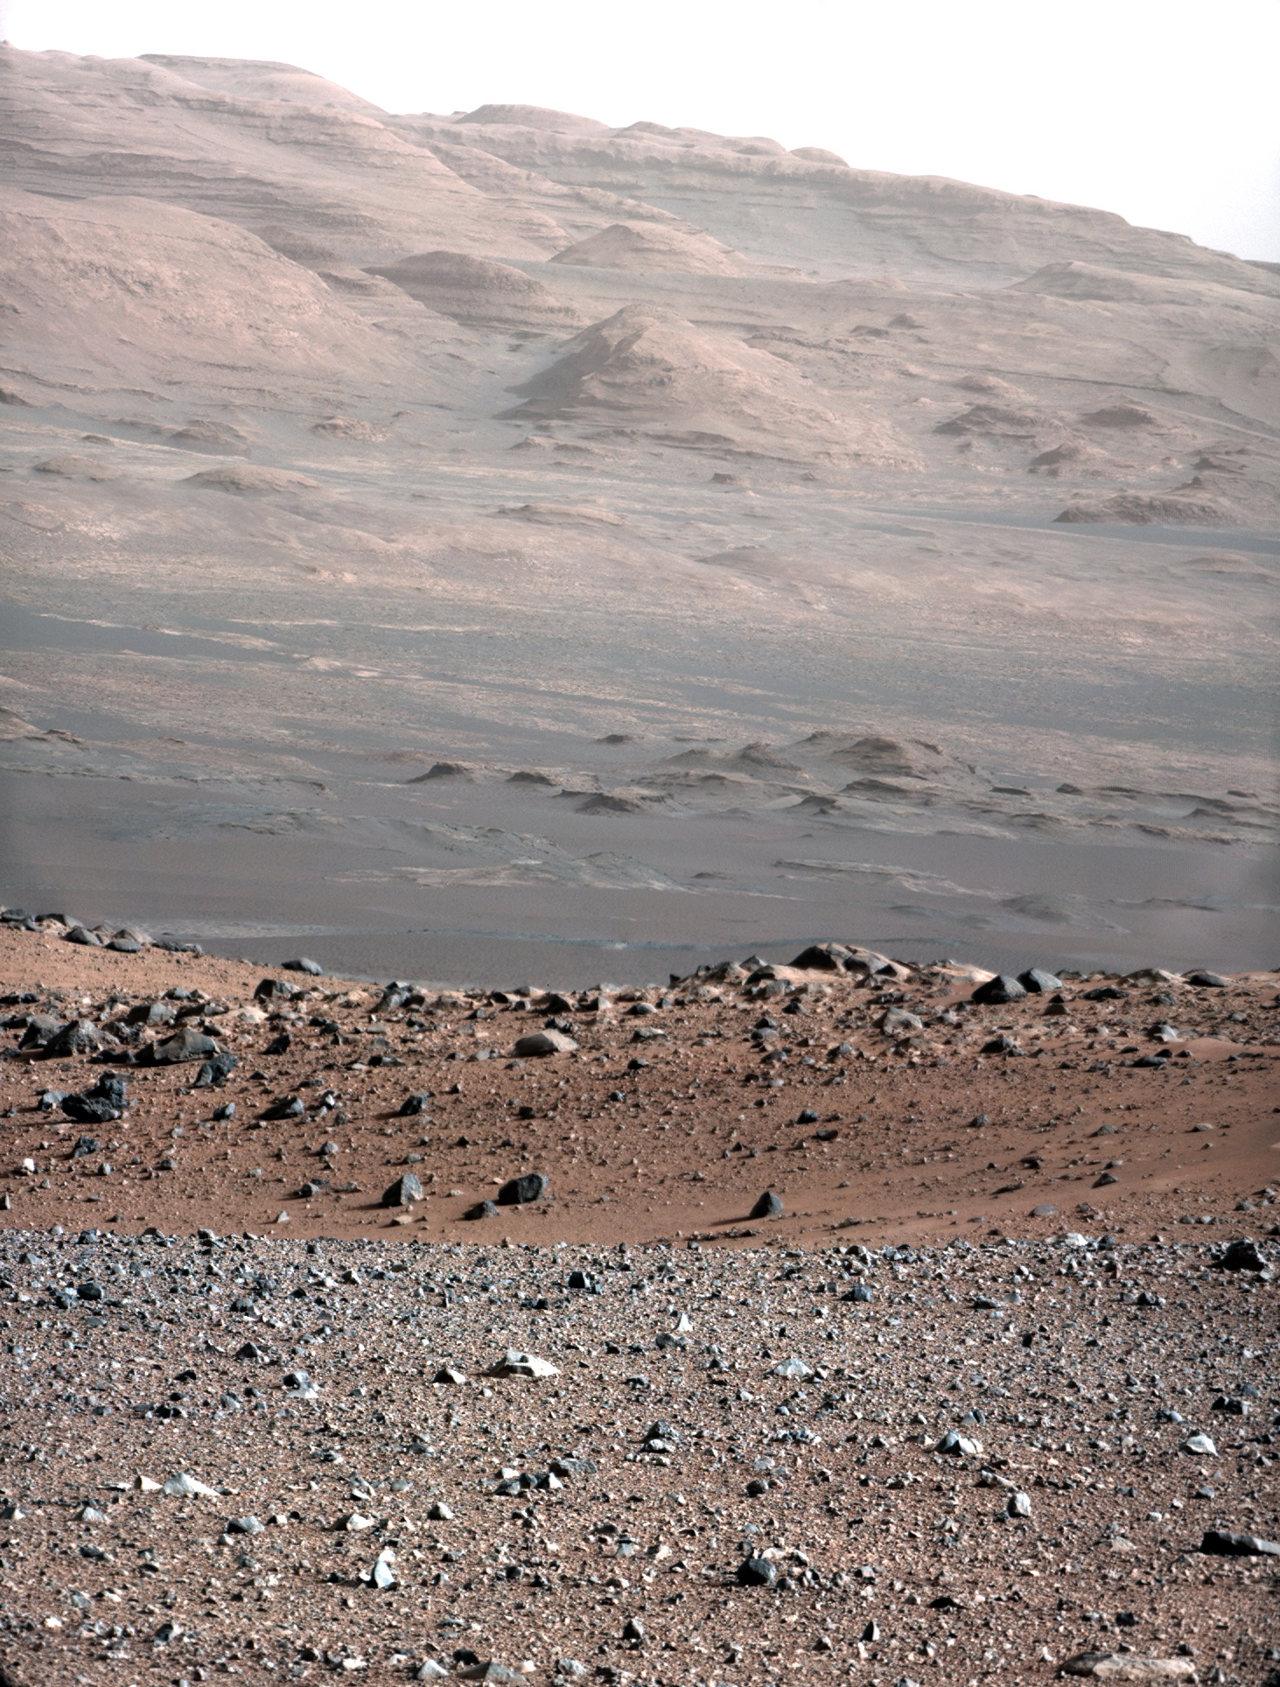 mount-sharp-on-mars-full